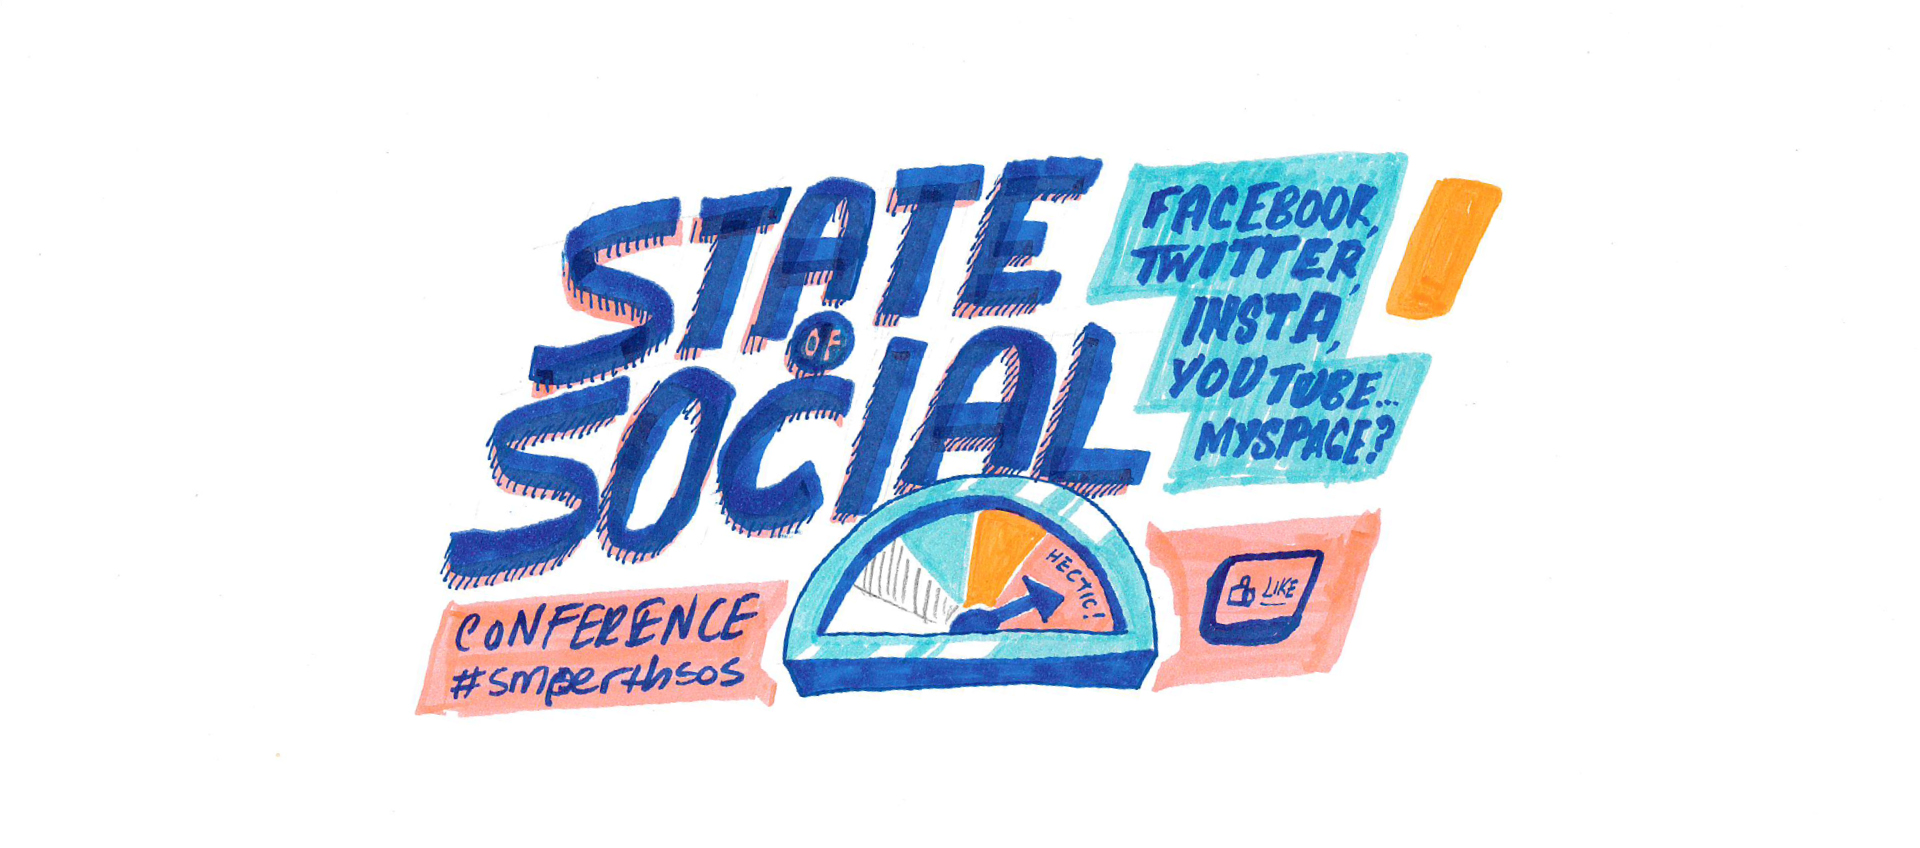 State of Social Conference | SMPerth | Cannings Purple | Cameron Jones